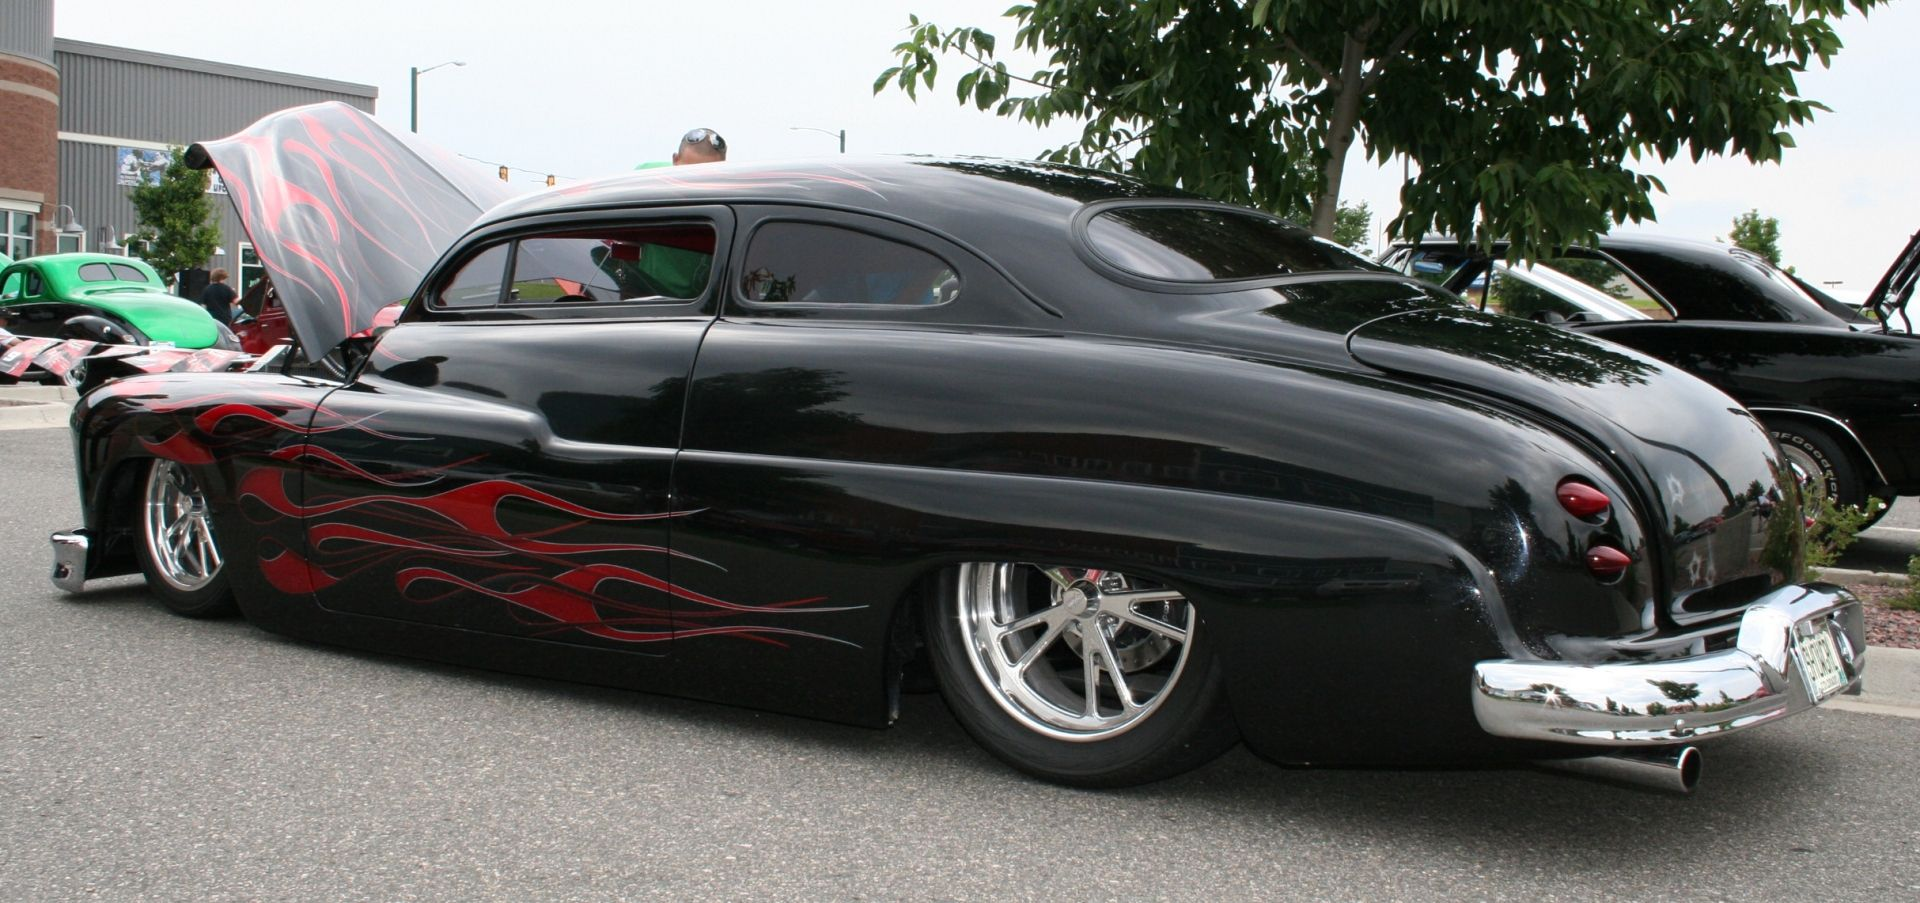 Mercury Lead Sled (black with flames) ~ Used Car Values